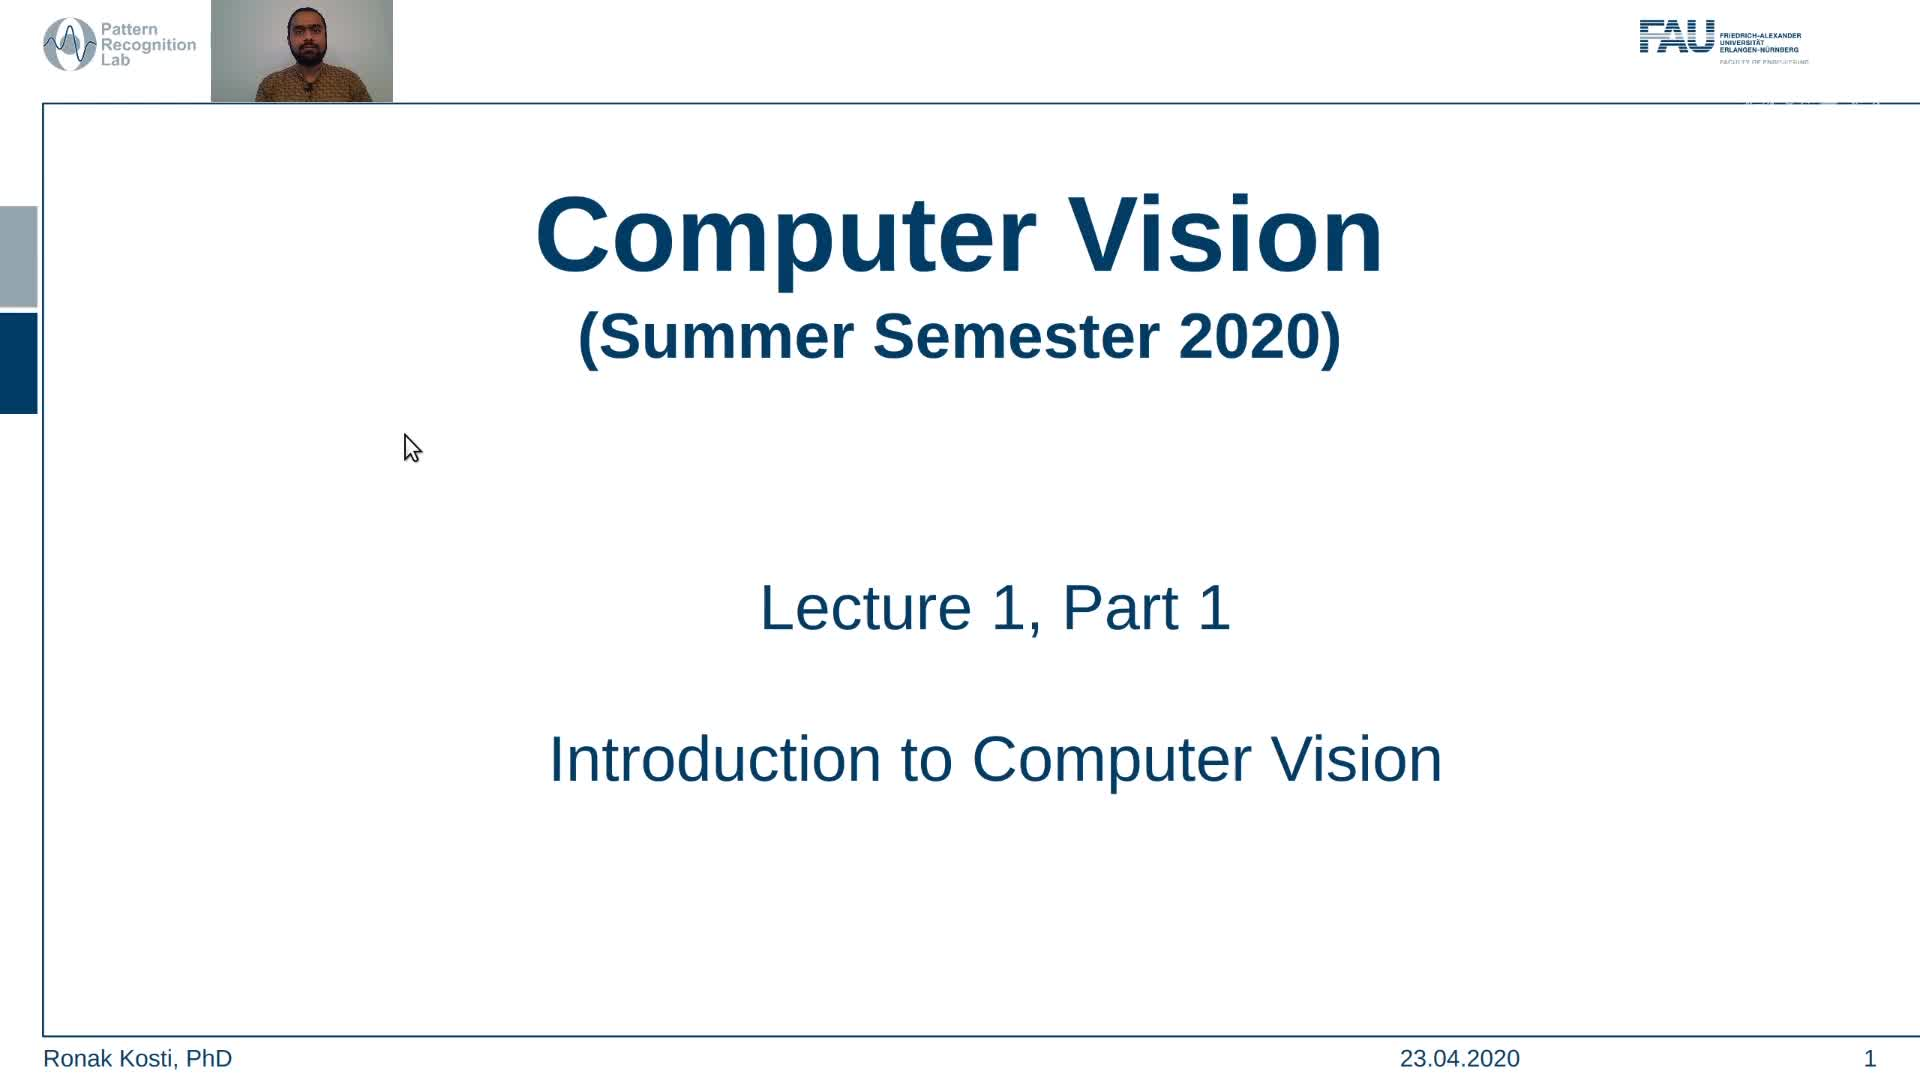 Intro to Computer Vision (Lecture 1, Part 1) preview image